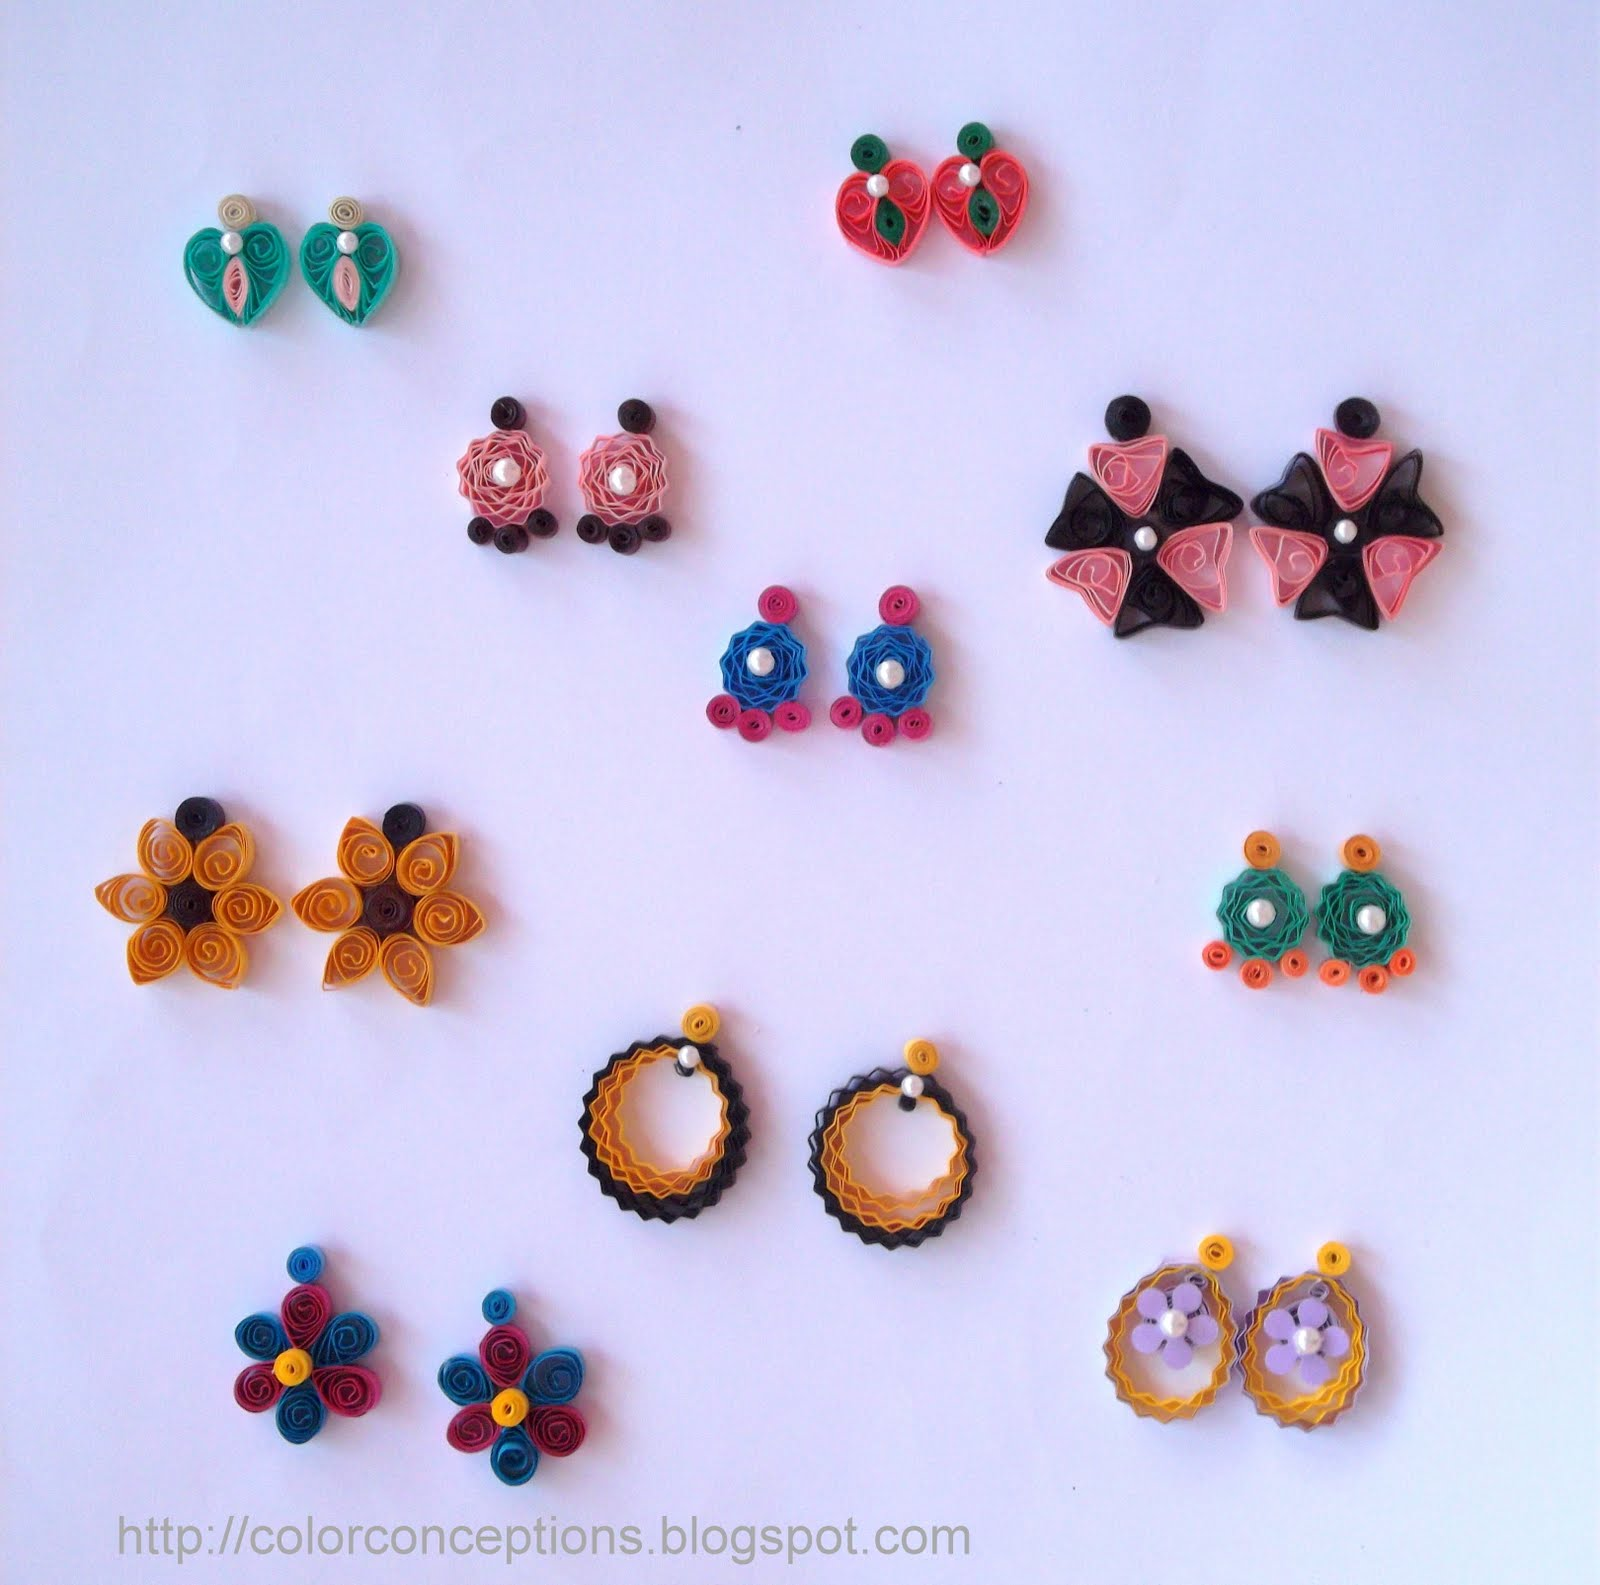 Quilling Earrings Designs Images : Color Conceptions: Quilled earrings